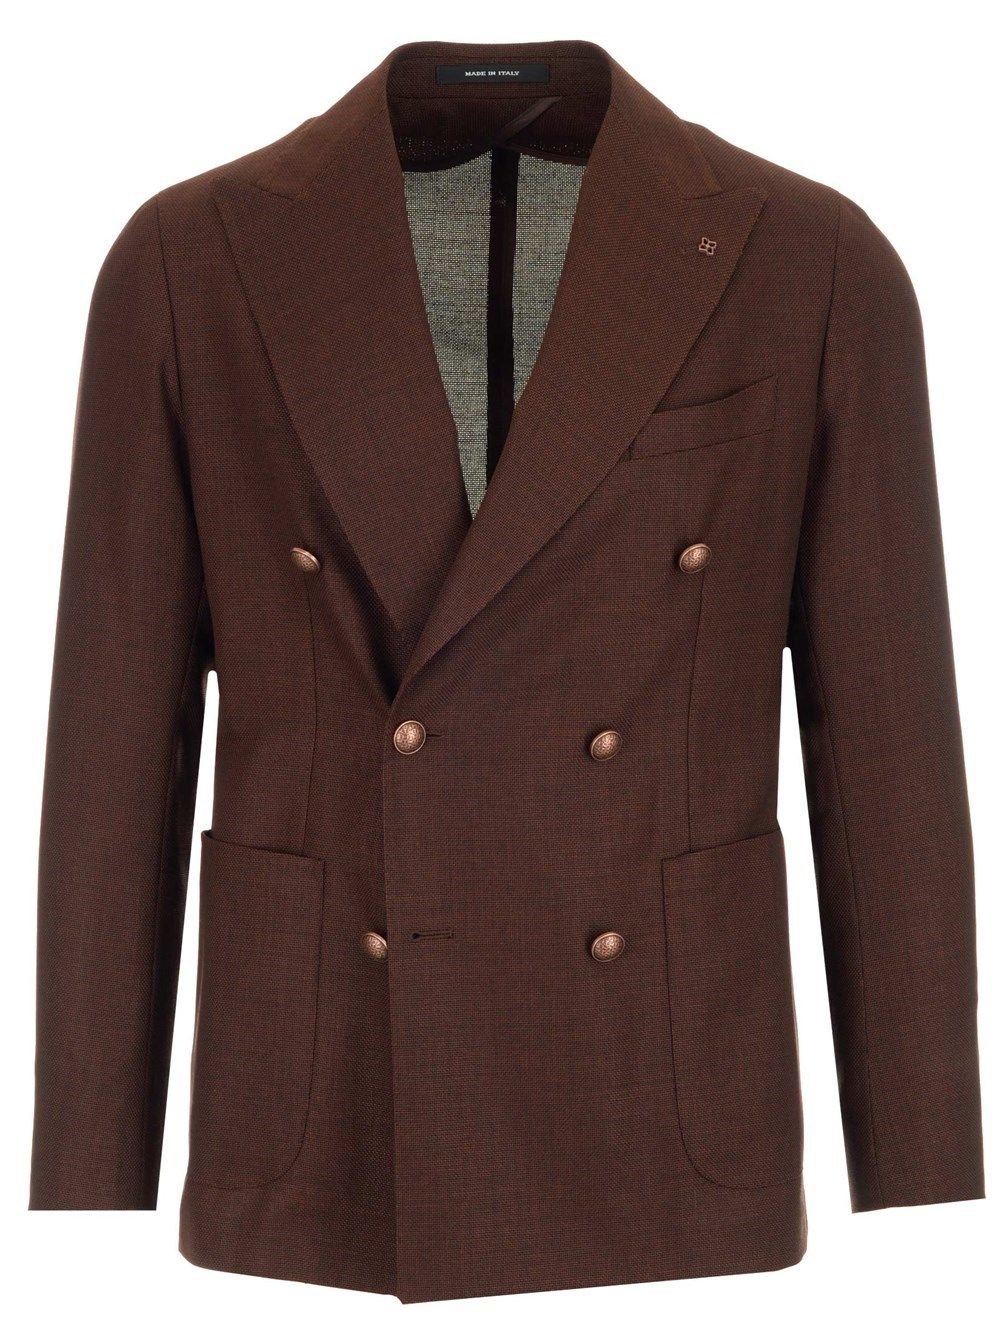 Tagliatore TAGLIATORE MEN'S 1SMC20K52UEG077K1283 BROWN OTHER MATERIALS BLAZER